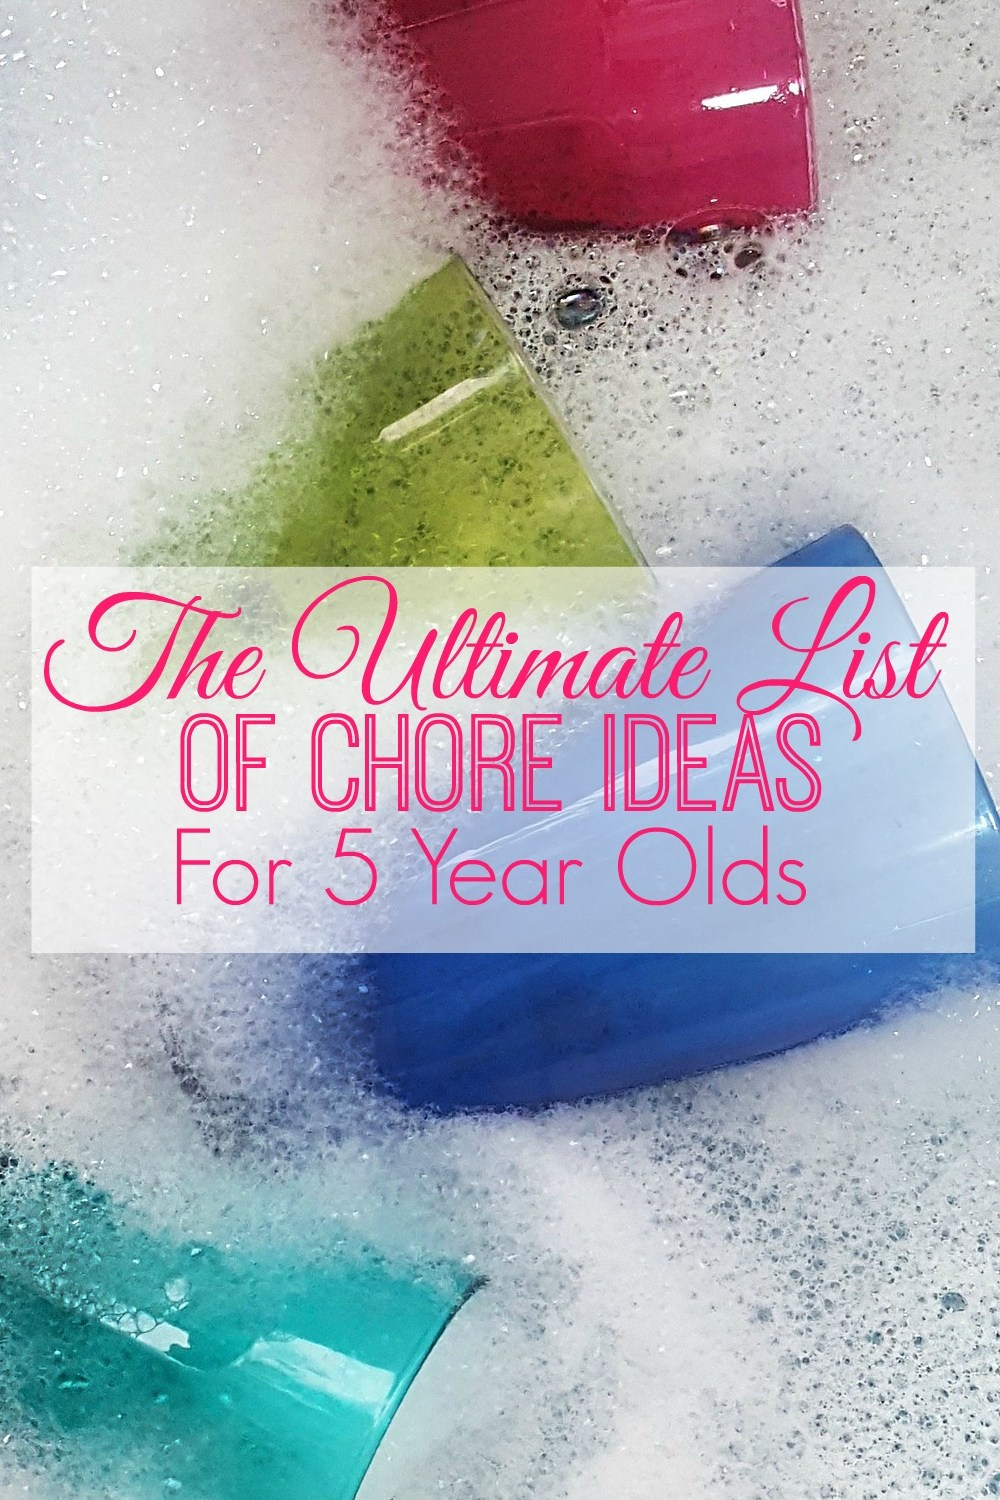 Chores For 5 Year Olds